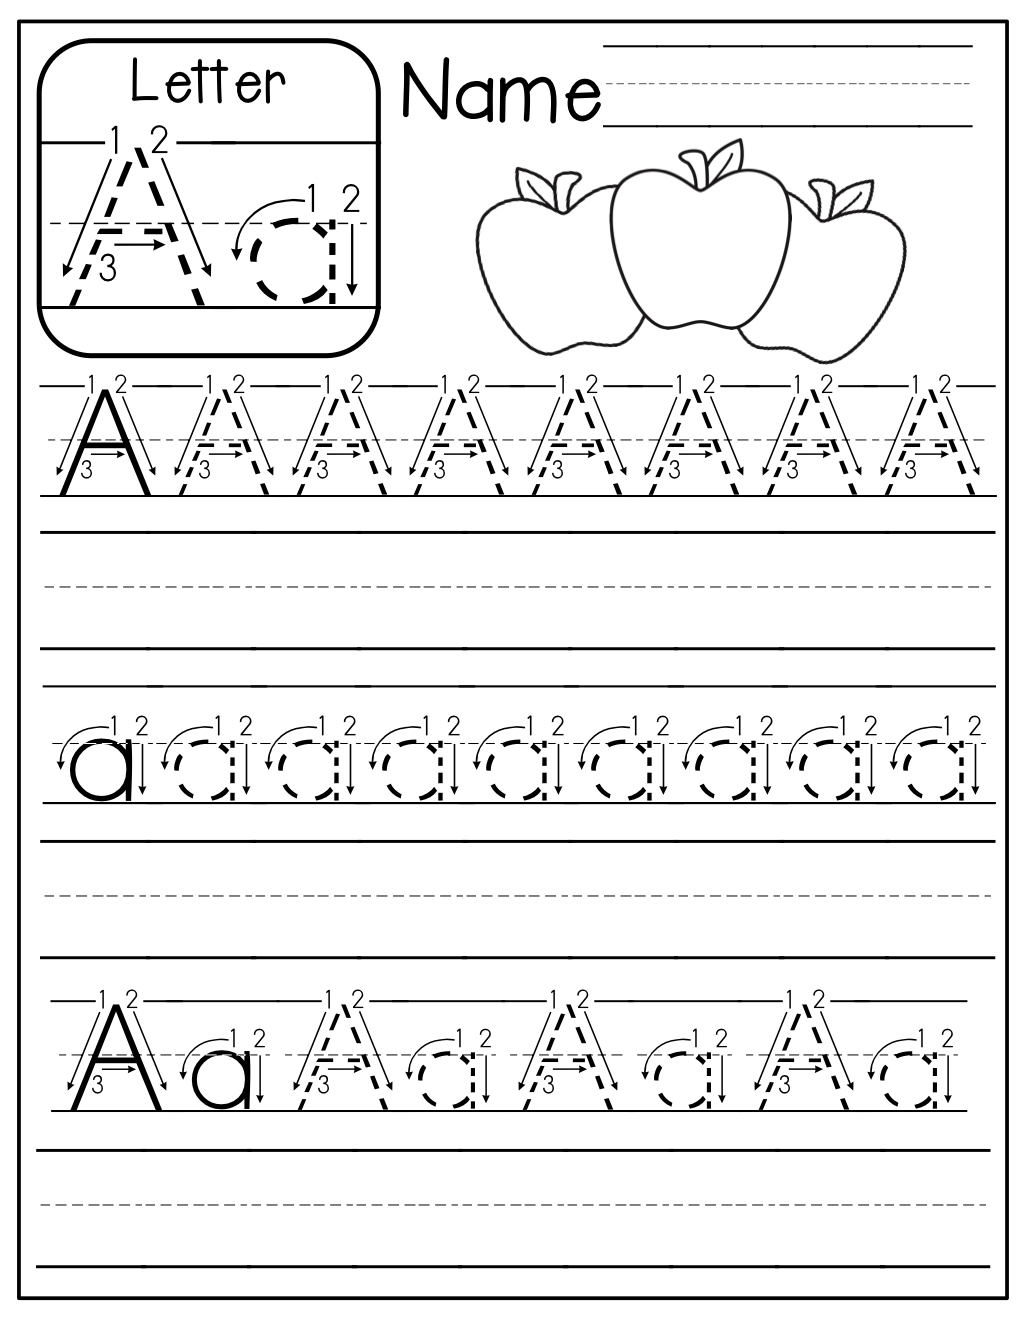 Free Handwriting Practice Pages! Just Place In Sheet Protectors